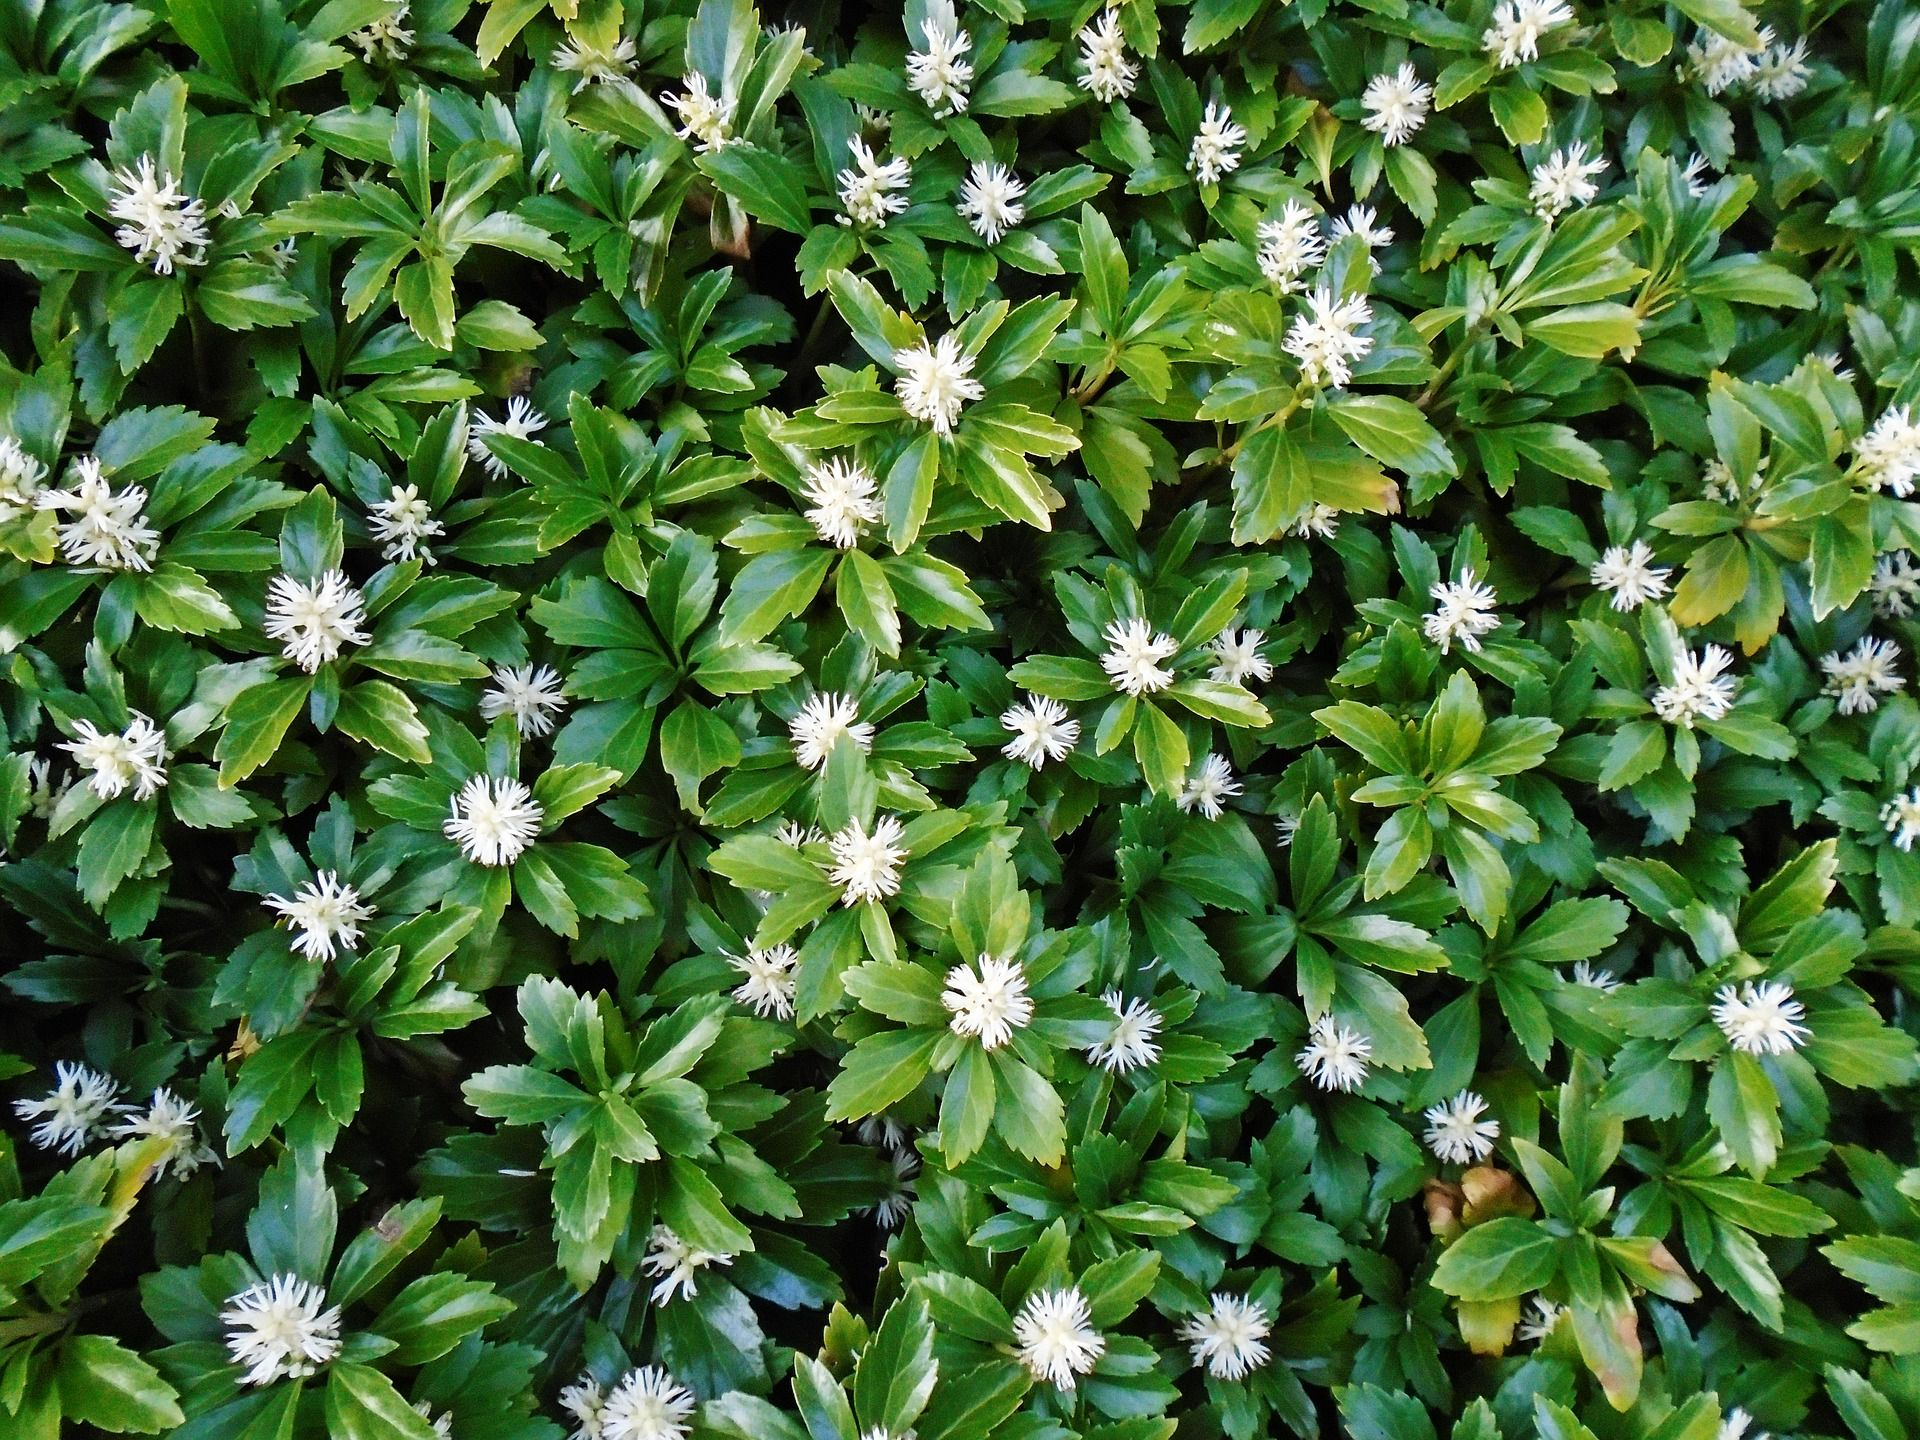 Pachysandra Ground Cover In Bloom